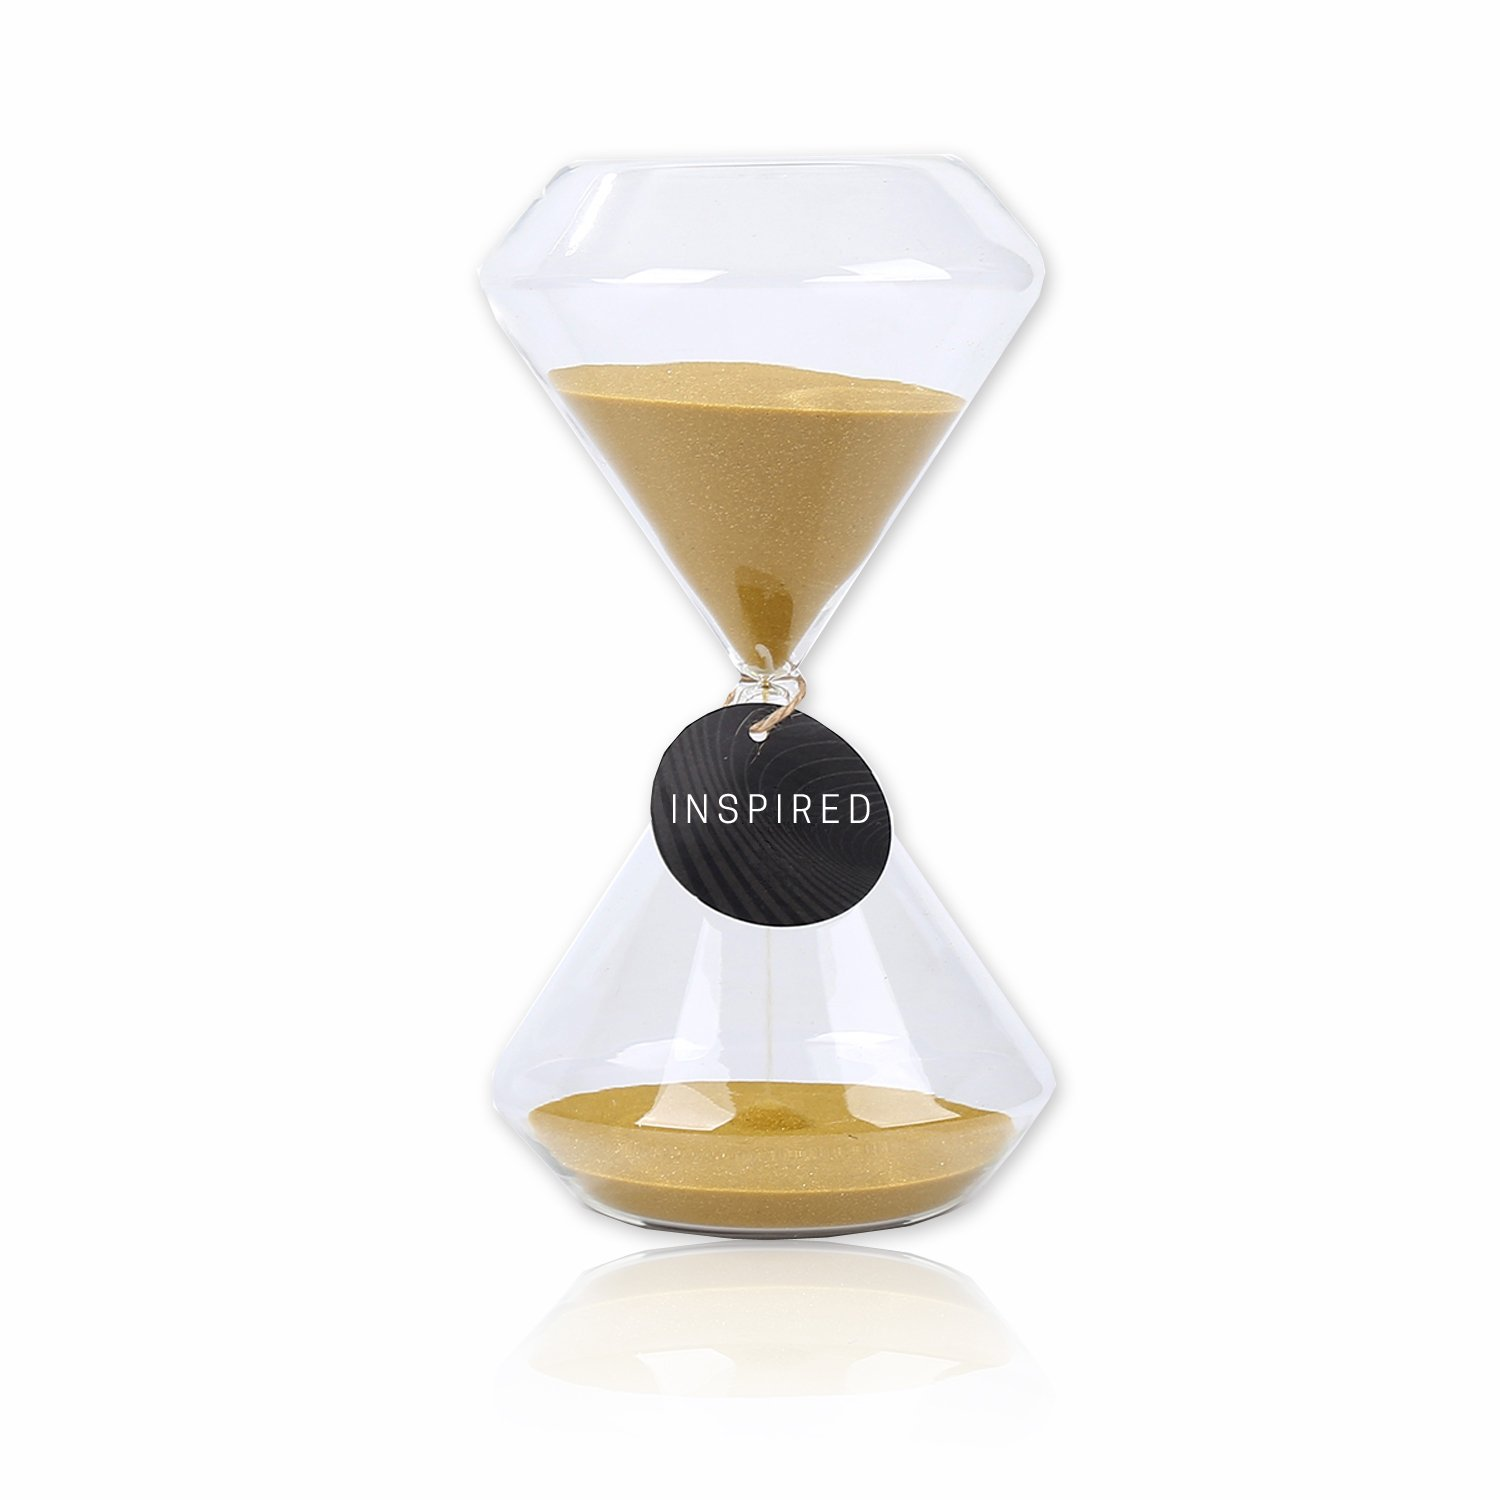 Hourglass Sand Timer-Inspired Glass,Home,Desk,Office Decor (7.5 Inch, Gold 30 Mins)